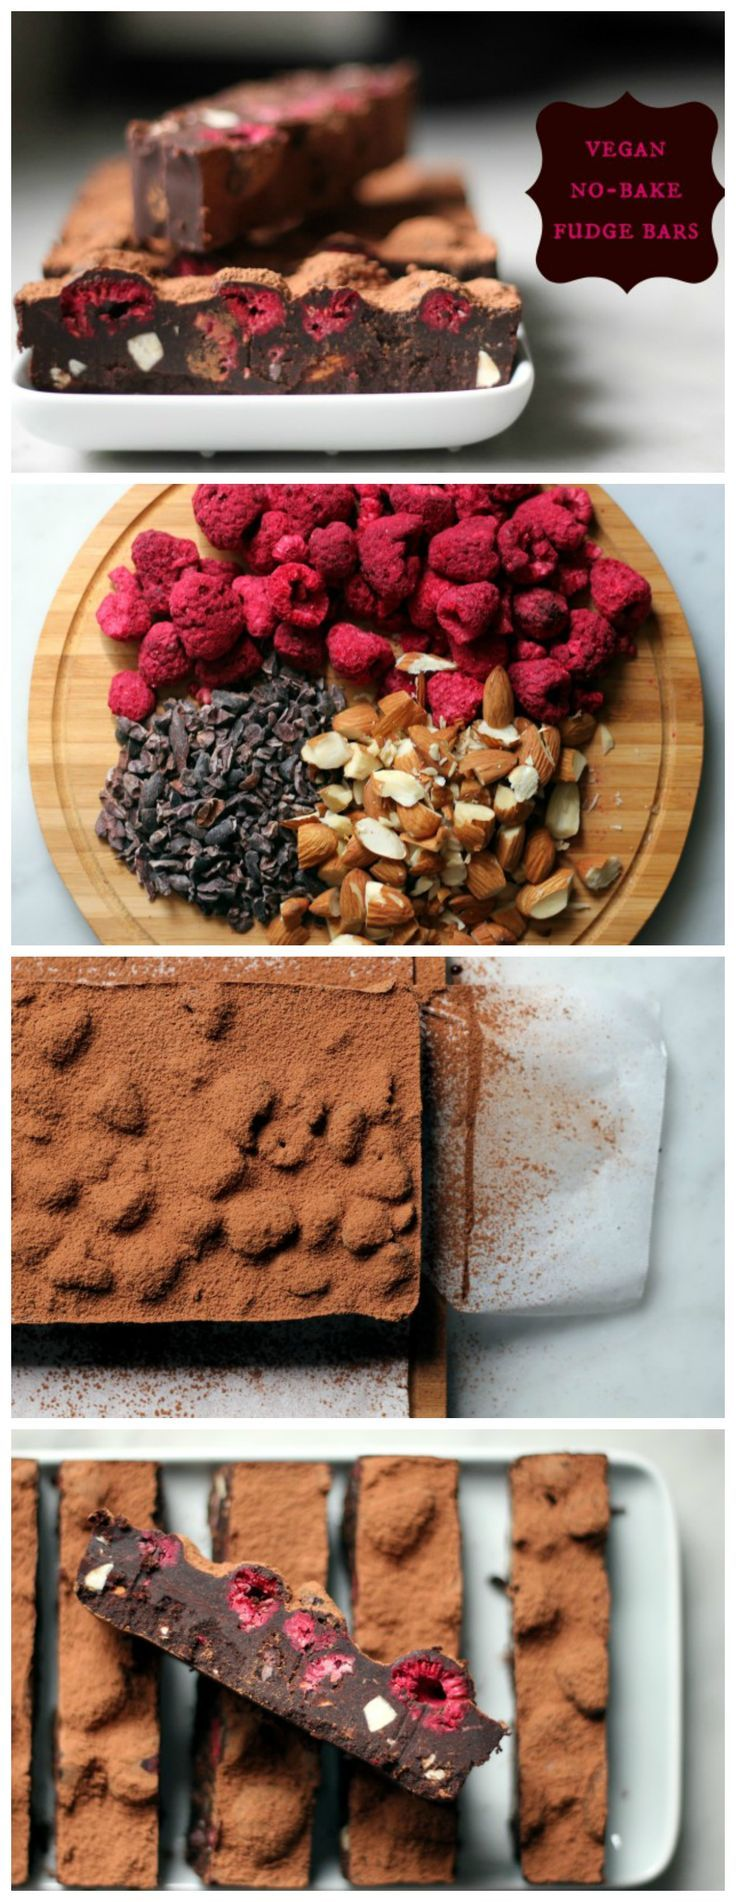 No-Bake Fudge - studded with nuts and raspberries. A great dessert for vegans, or just as a healthy snack.